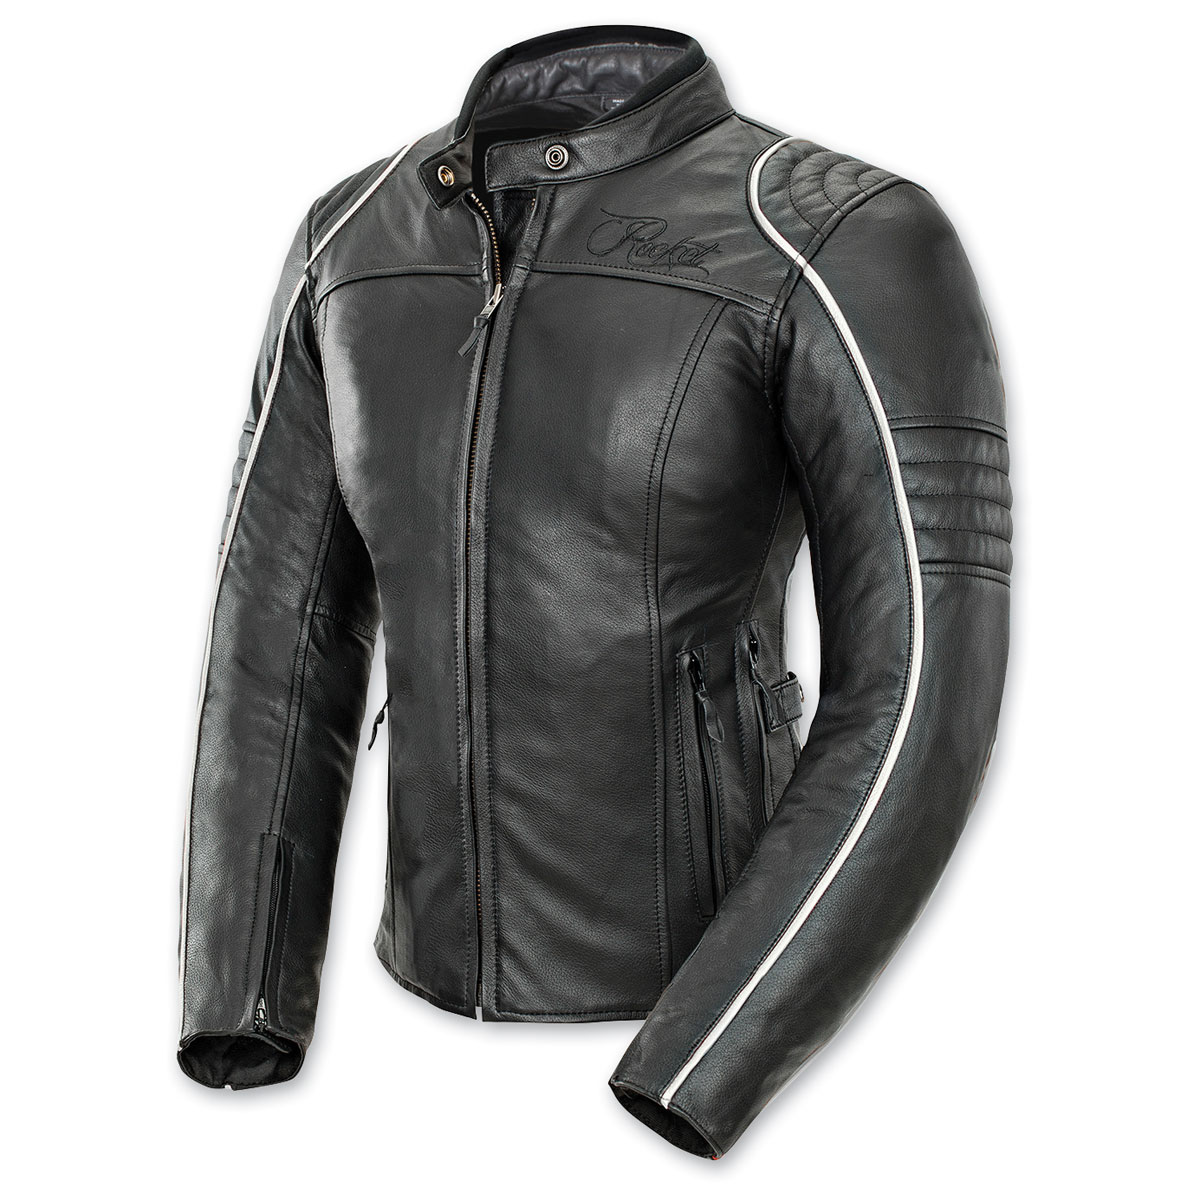 Joe Rocket Women's Lira Black/White Leather Jacket